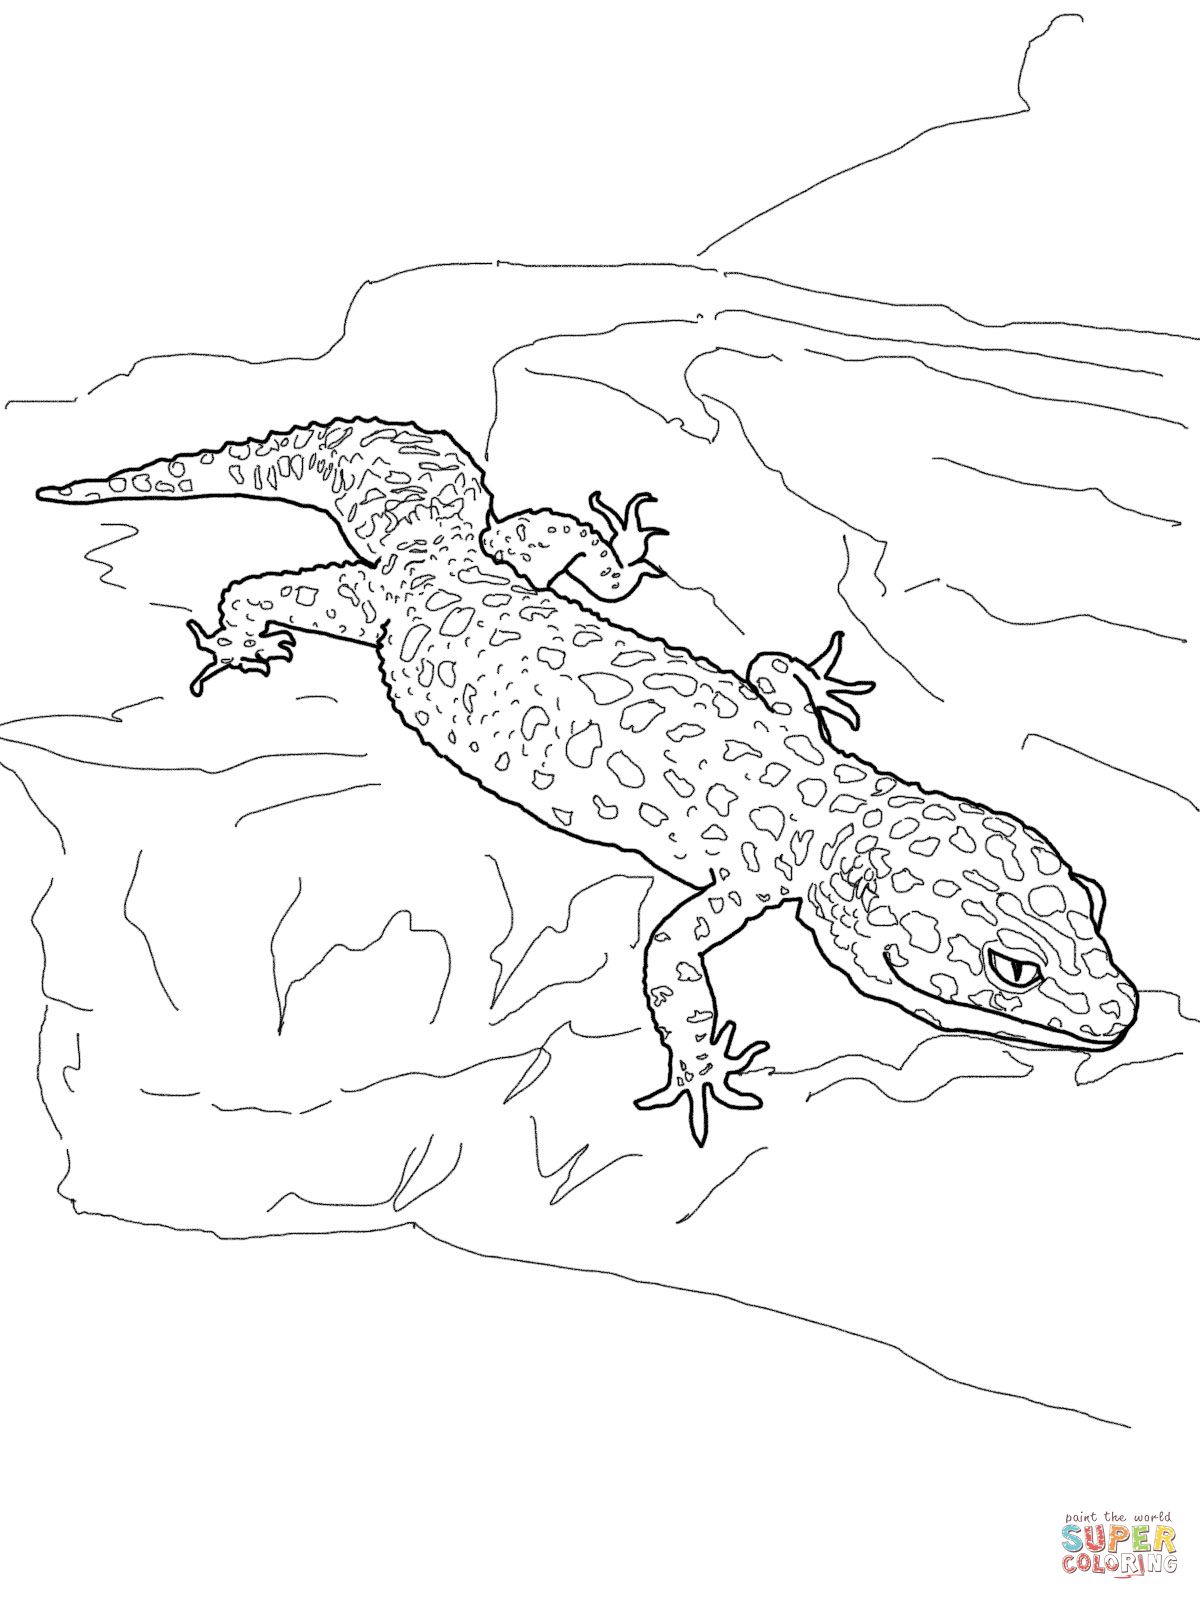 Leopard Gecko Coloring Page Supercoloring Com Cartoon Lizard Coloring Pages Coloring Letters